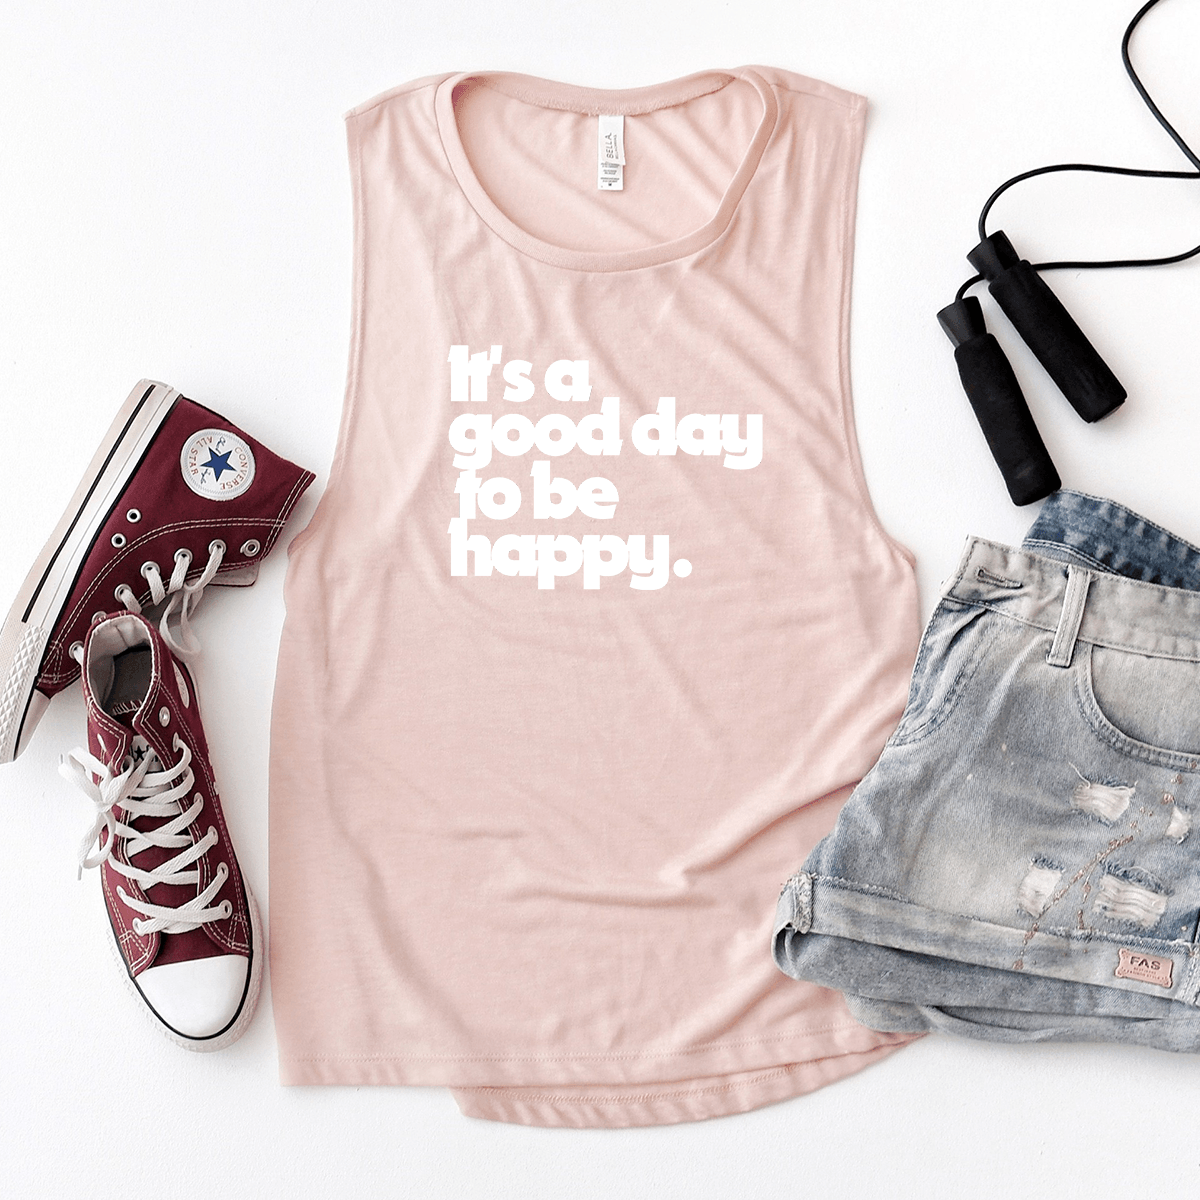 It's a Good Day to be Happy - Bella+Canvas Tank Top